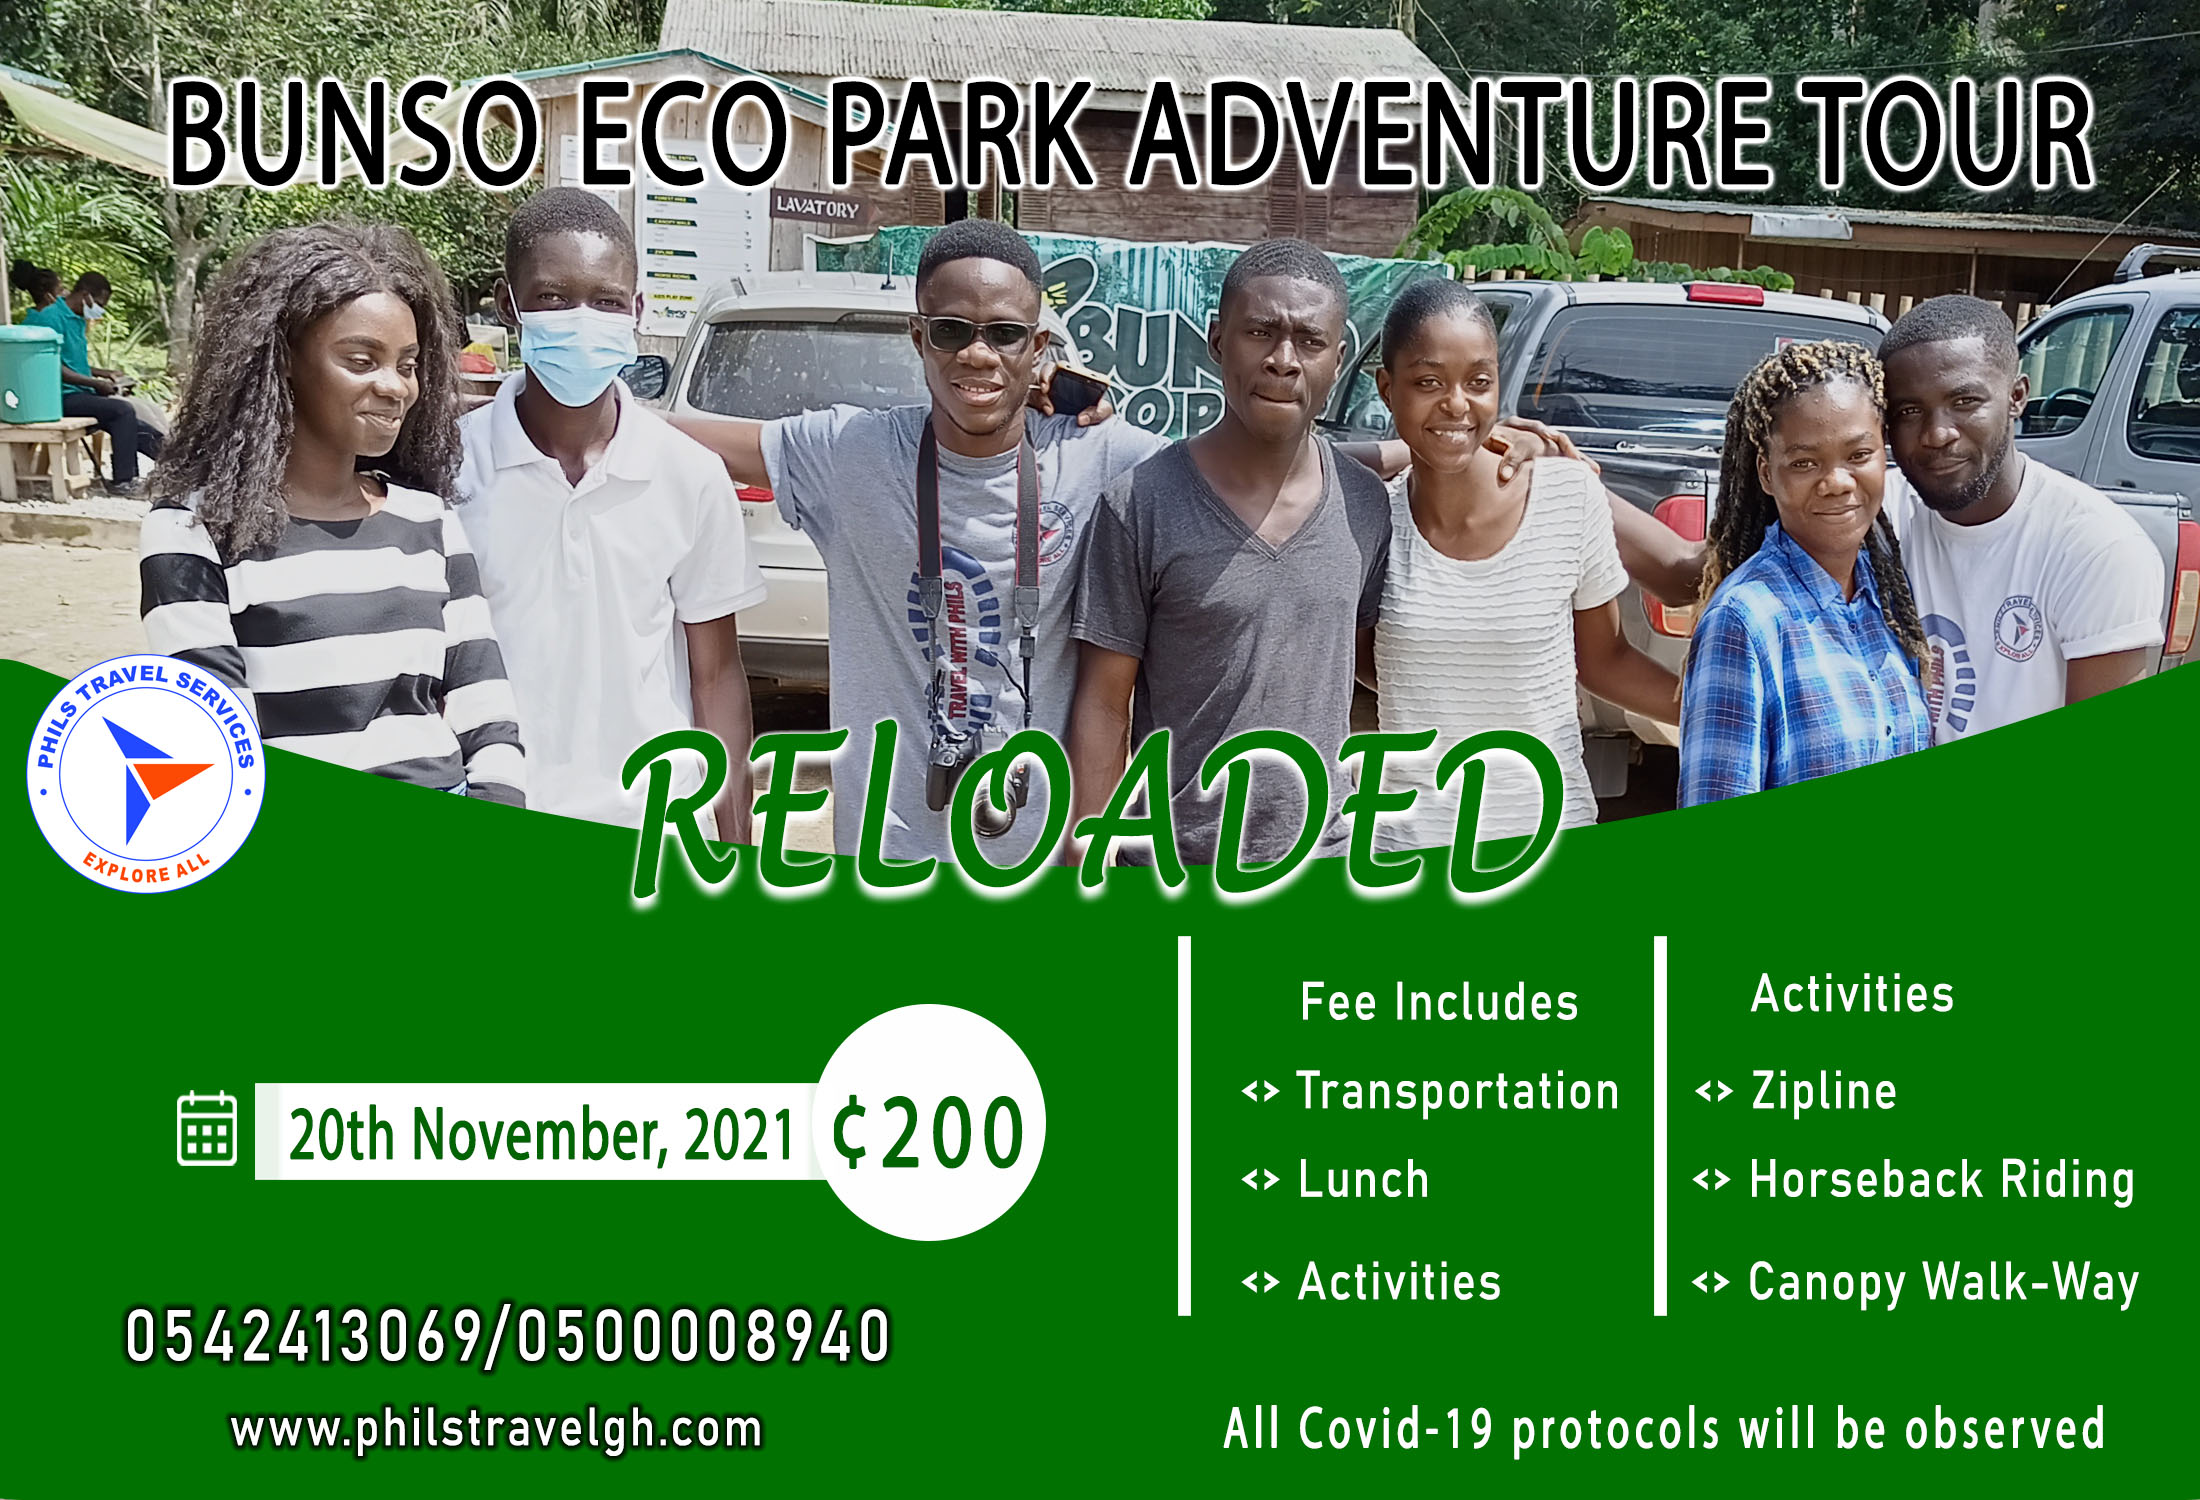 BUNSO ECO-PARK RELOADED